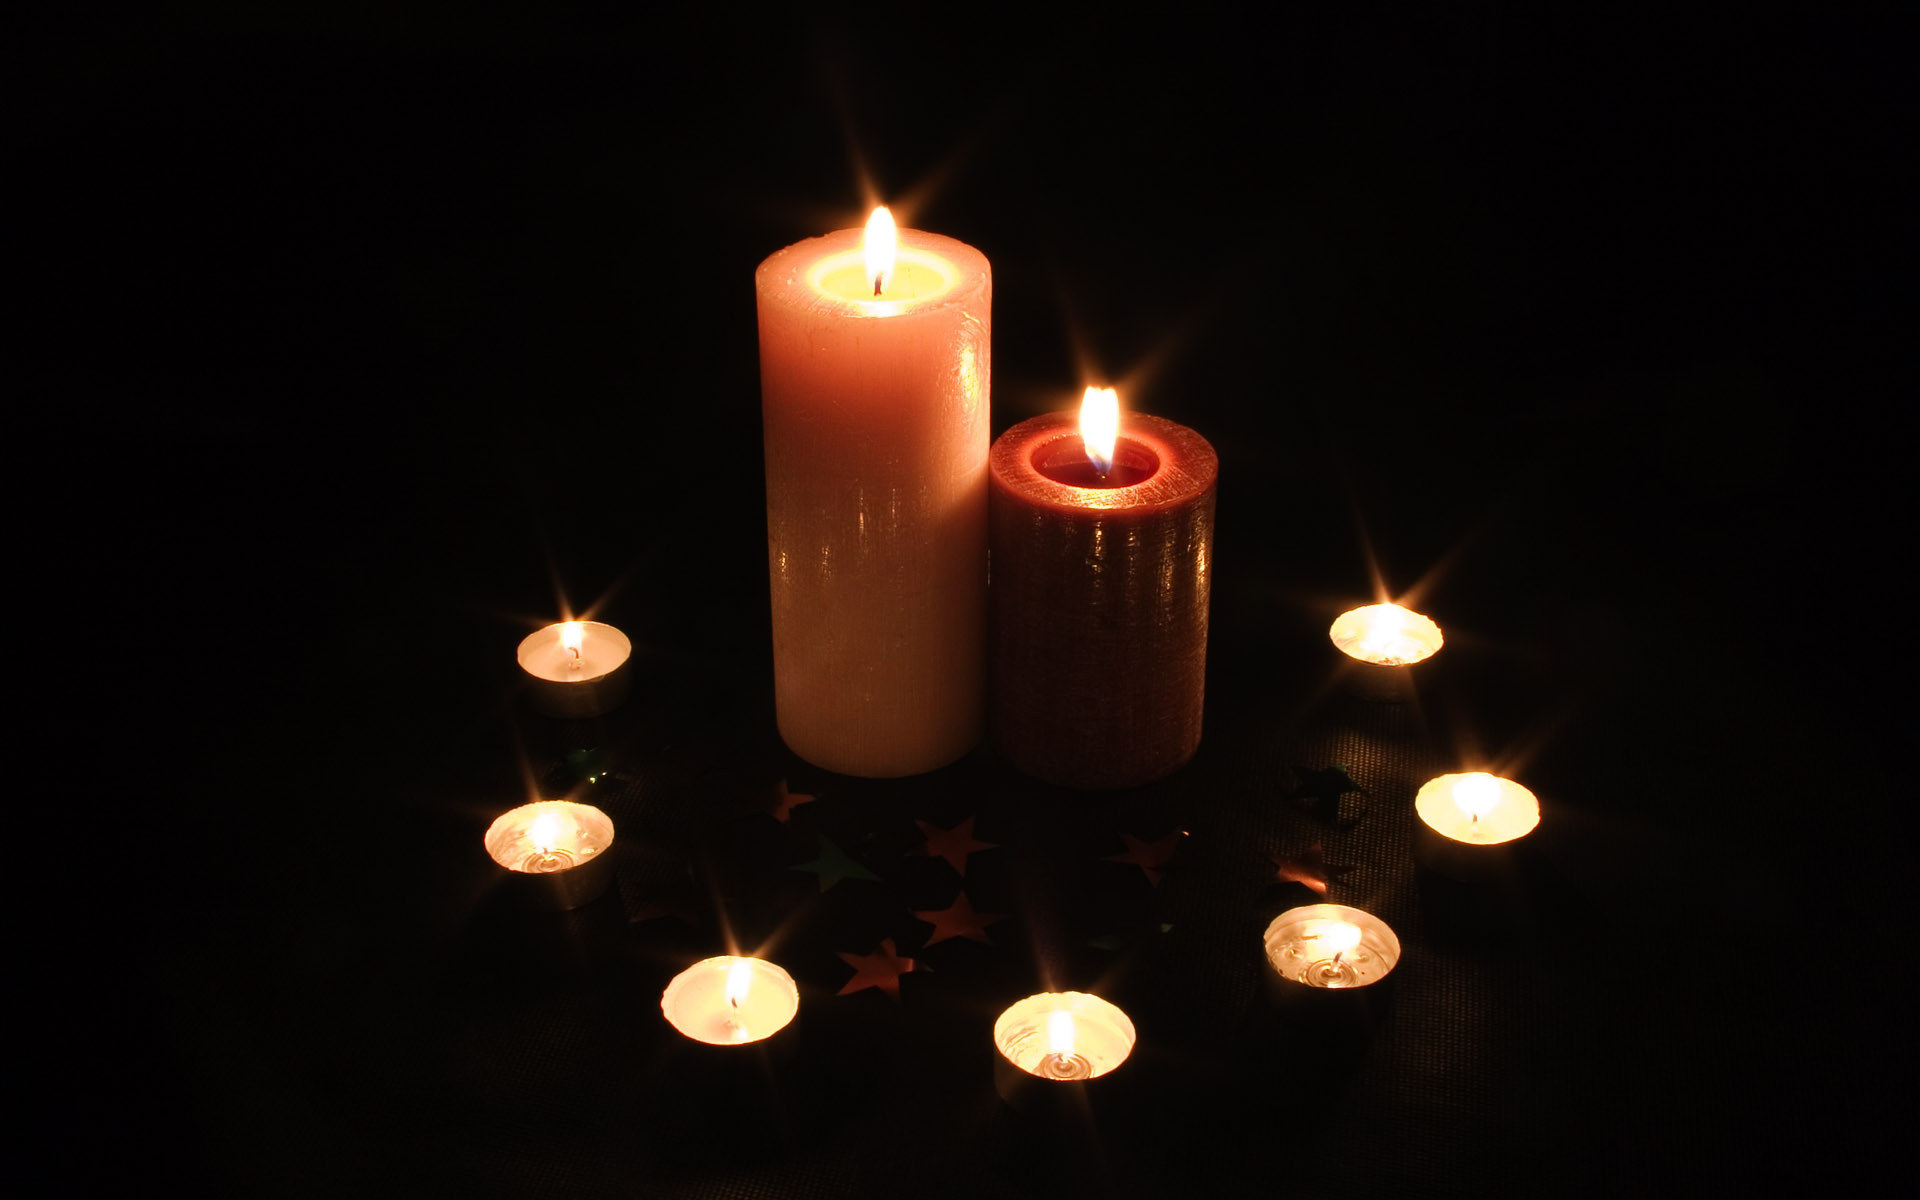 Candle wallpaper 8548